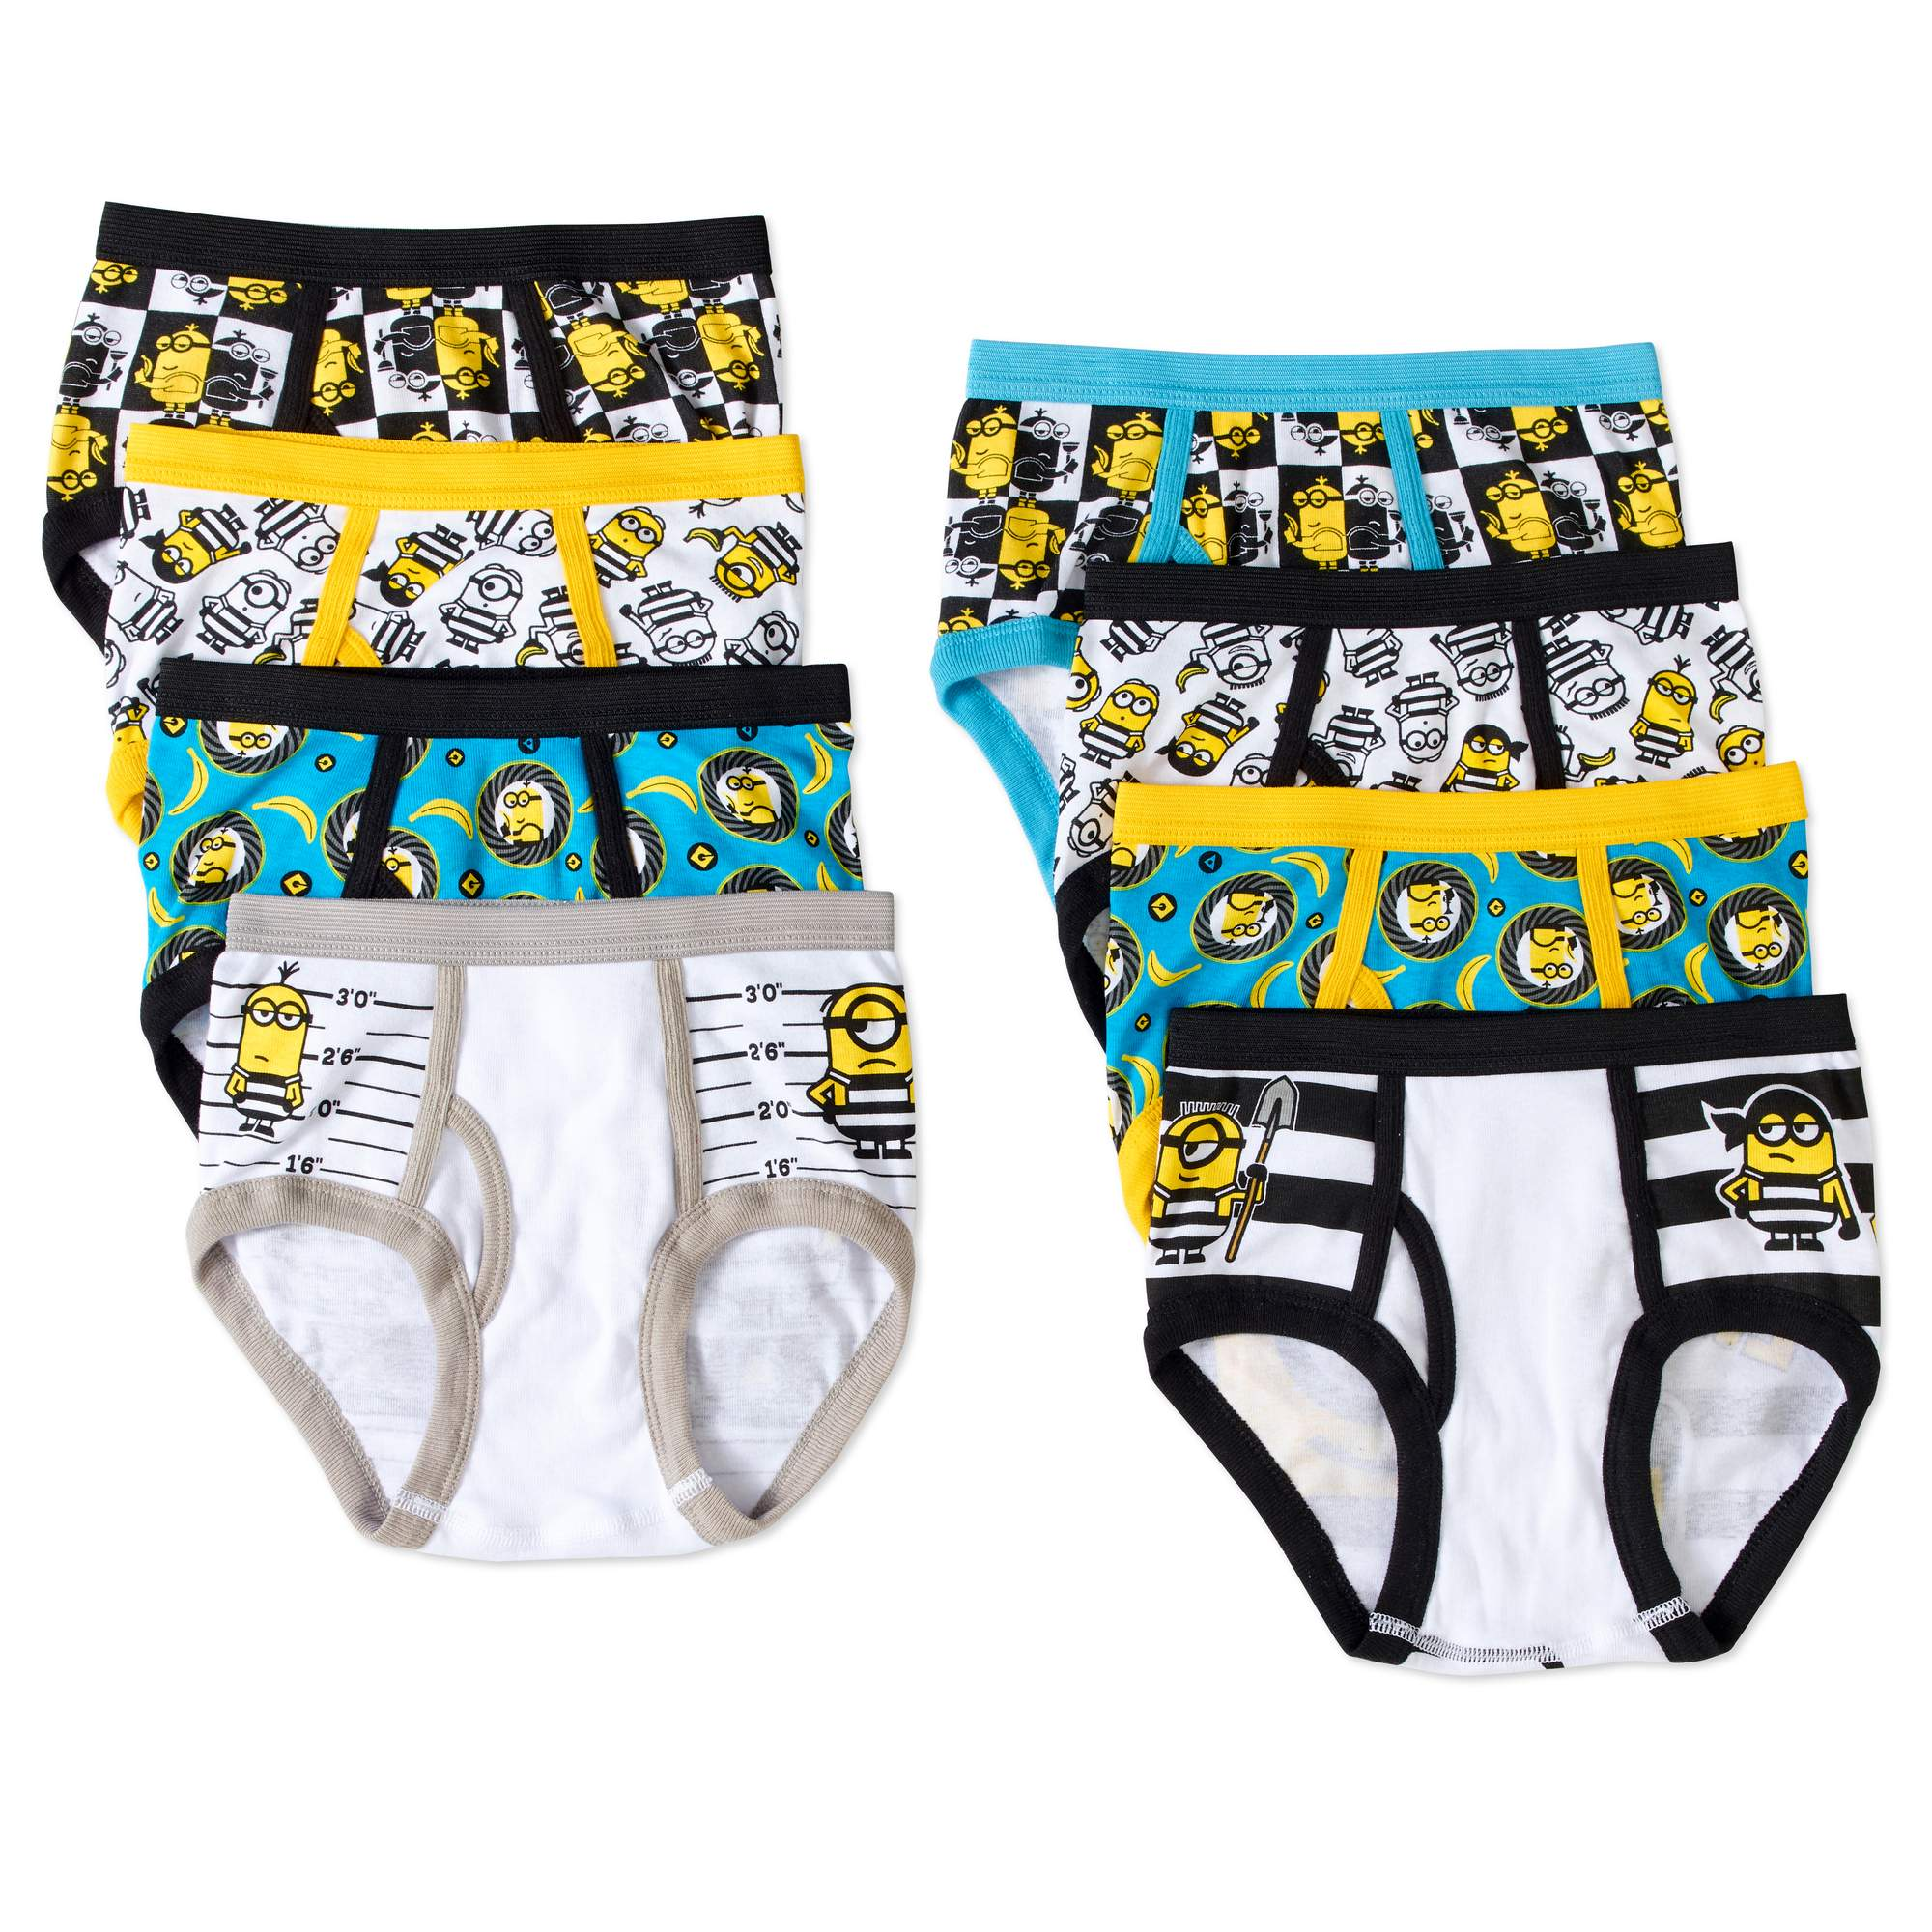 Despicable Me Boys' Cotton Briefs, 5 Pack + 3 Free Bonus Pairs